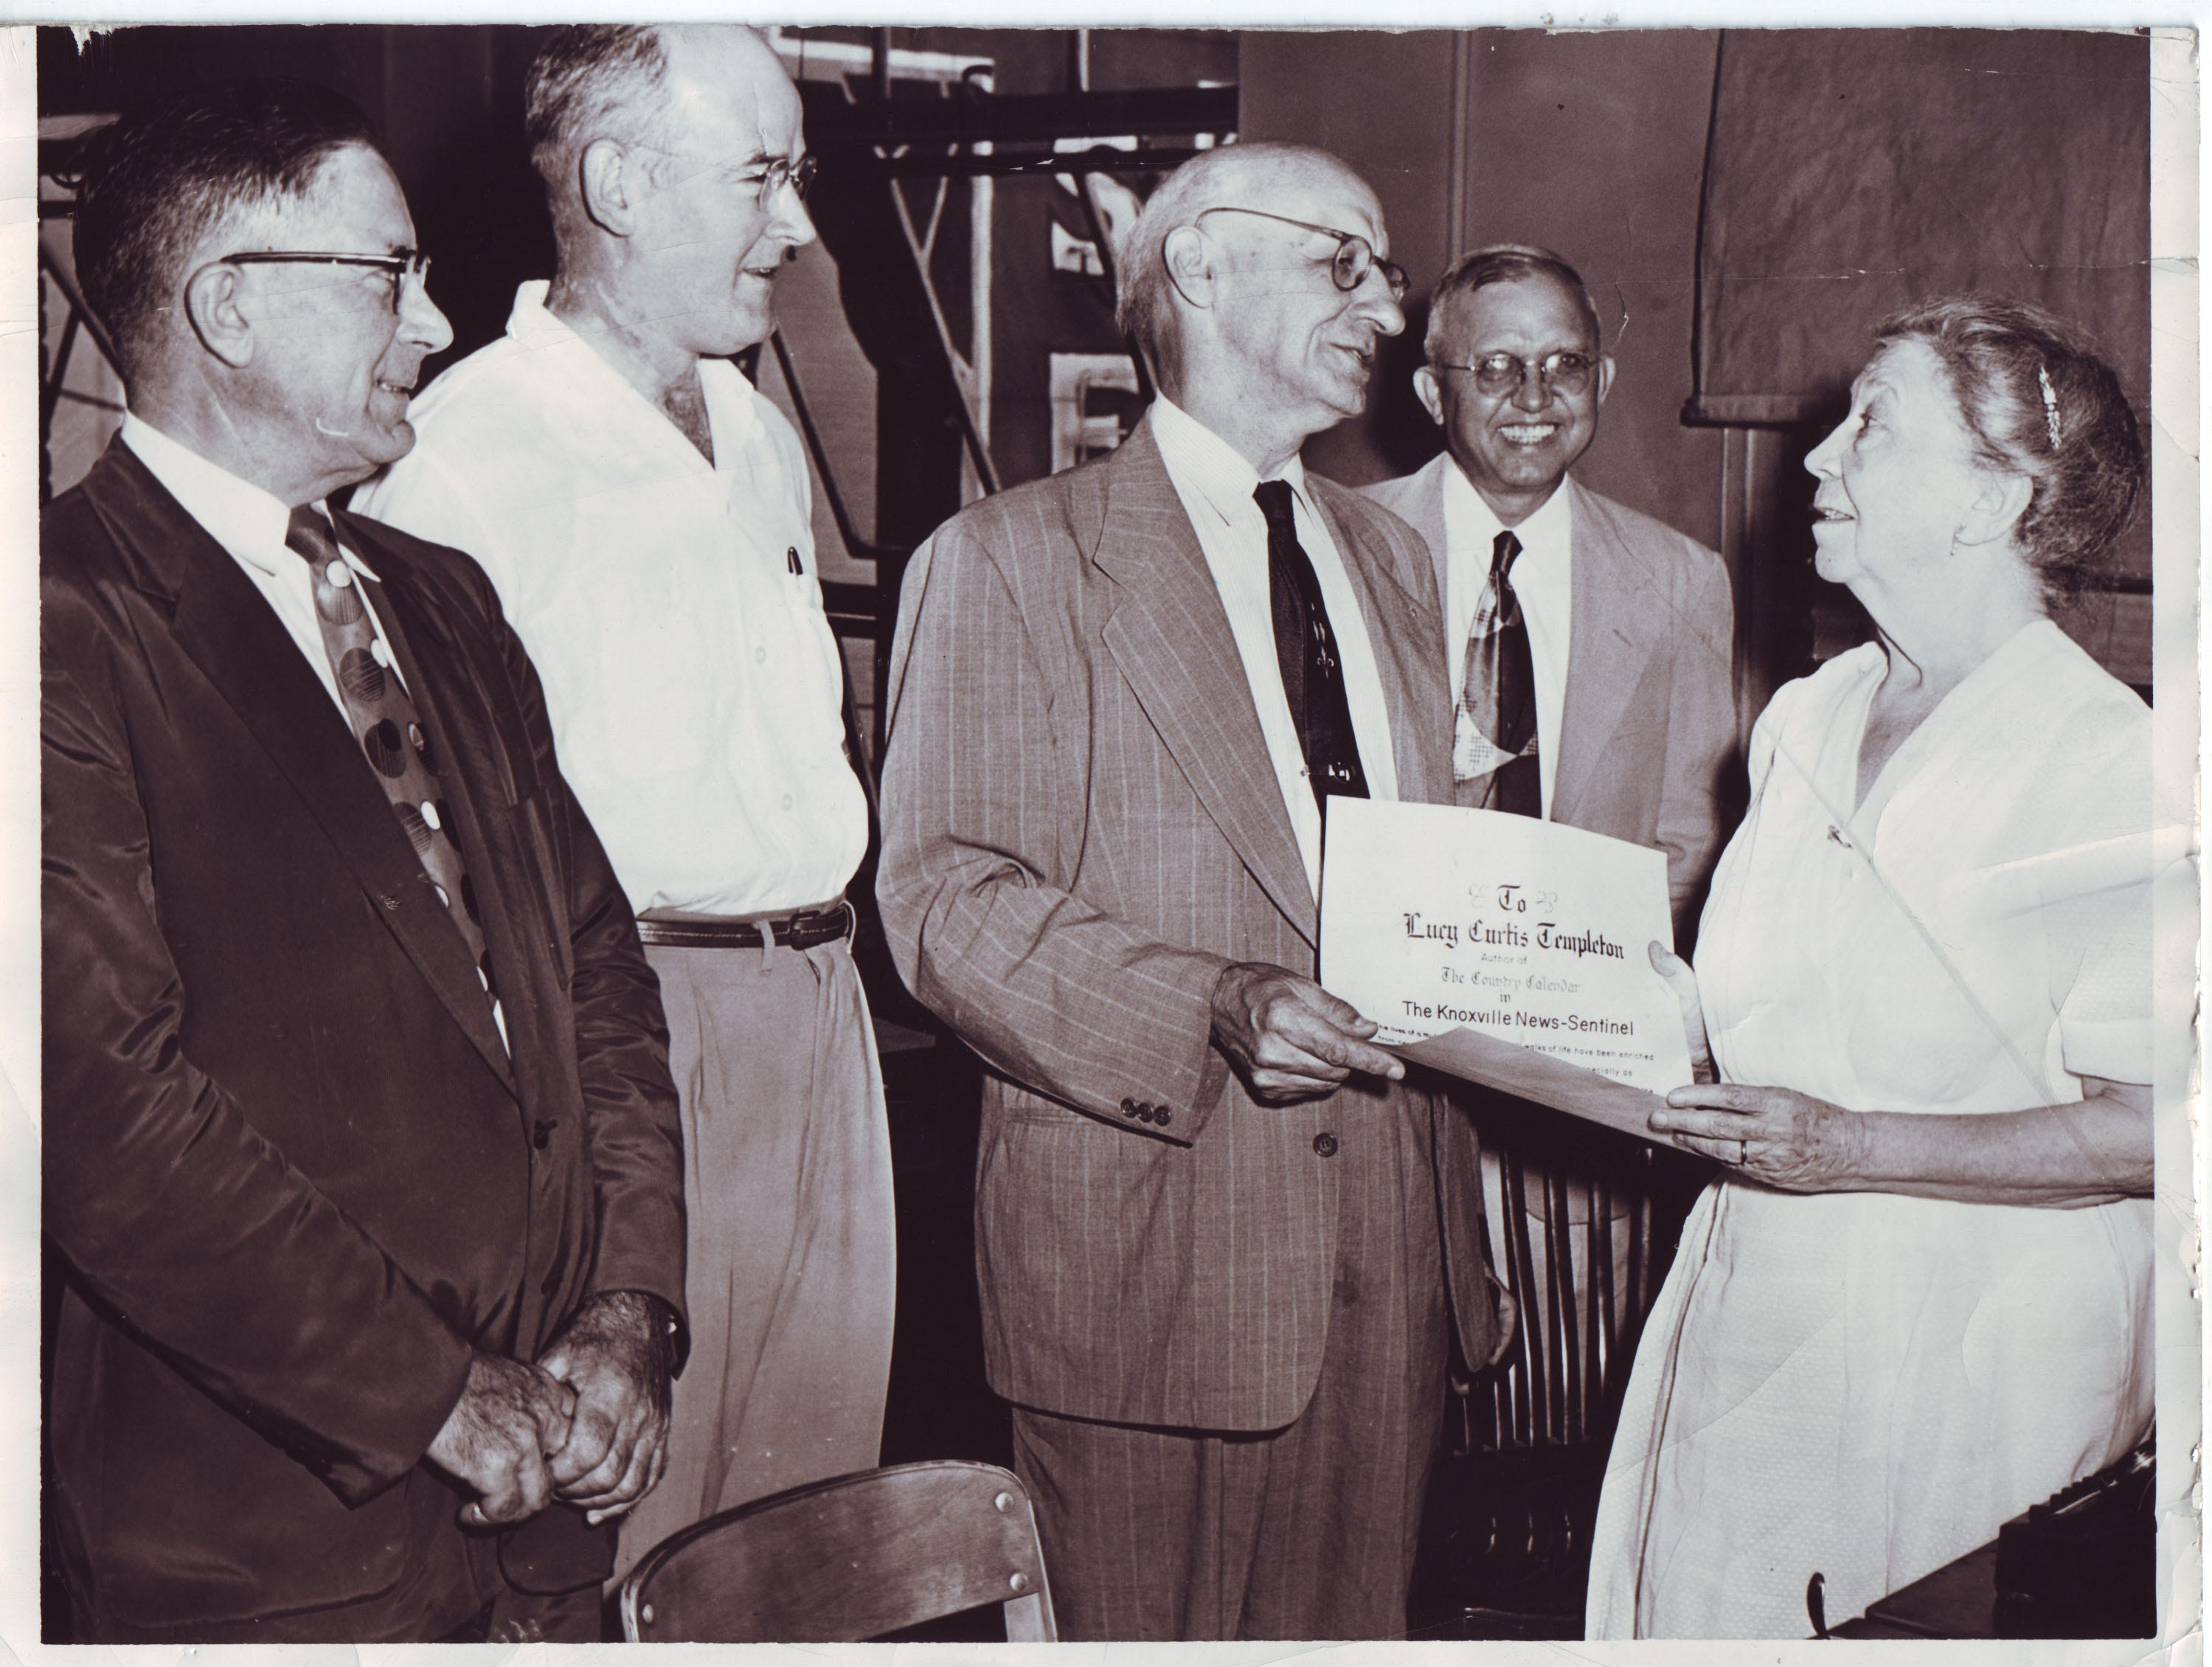 """In an Aug. 16, 1955 photograph, Knoxville News Sentinel writer Lucy Curtis Templeton is honored for her column, """"A Country Calendar,"""" by the Men's Garden Club. Pictured are Past President Dan. E. Baird, left, Secretary-Treasurer John B. Walker, President Karl E. Steinmetz, Past President W.C. McCammon Jr. and Templeton.  In making the presentation Steinmetz compared the material in Templeton's """"A Country Calendar"""" to Thoreau's Walden."""